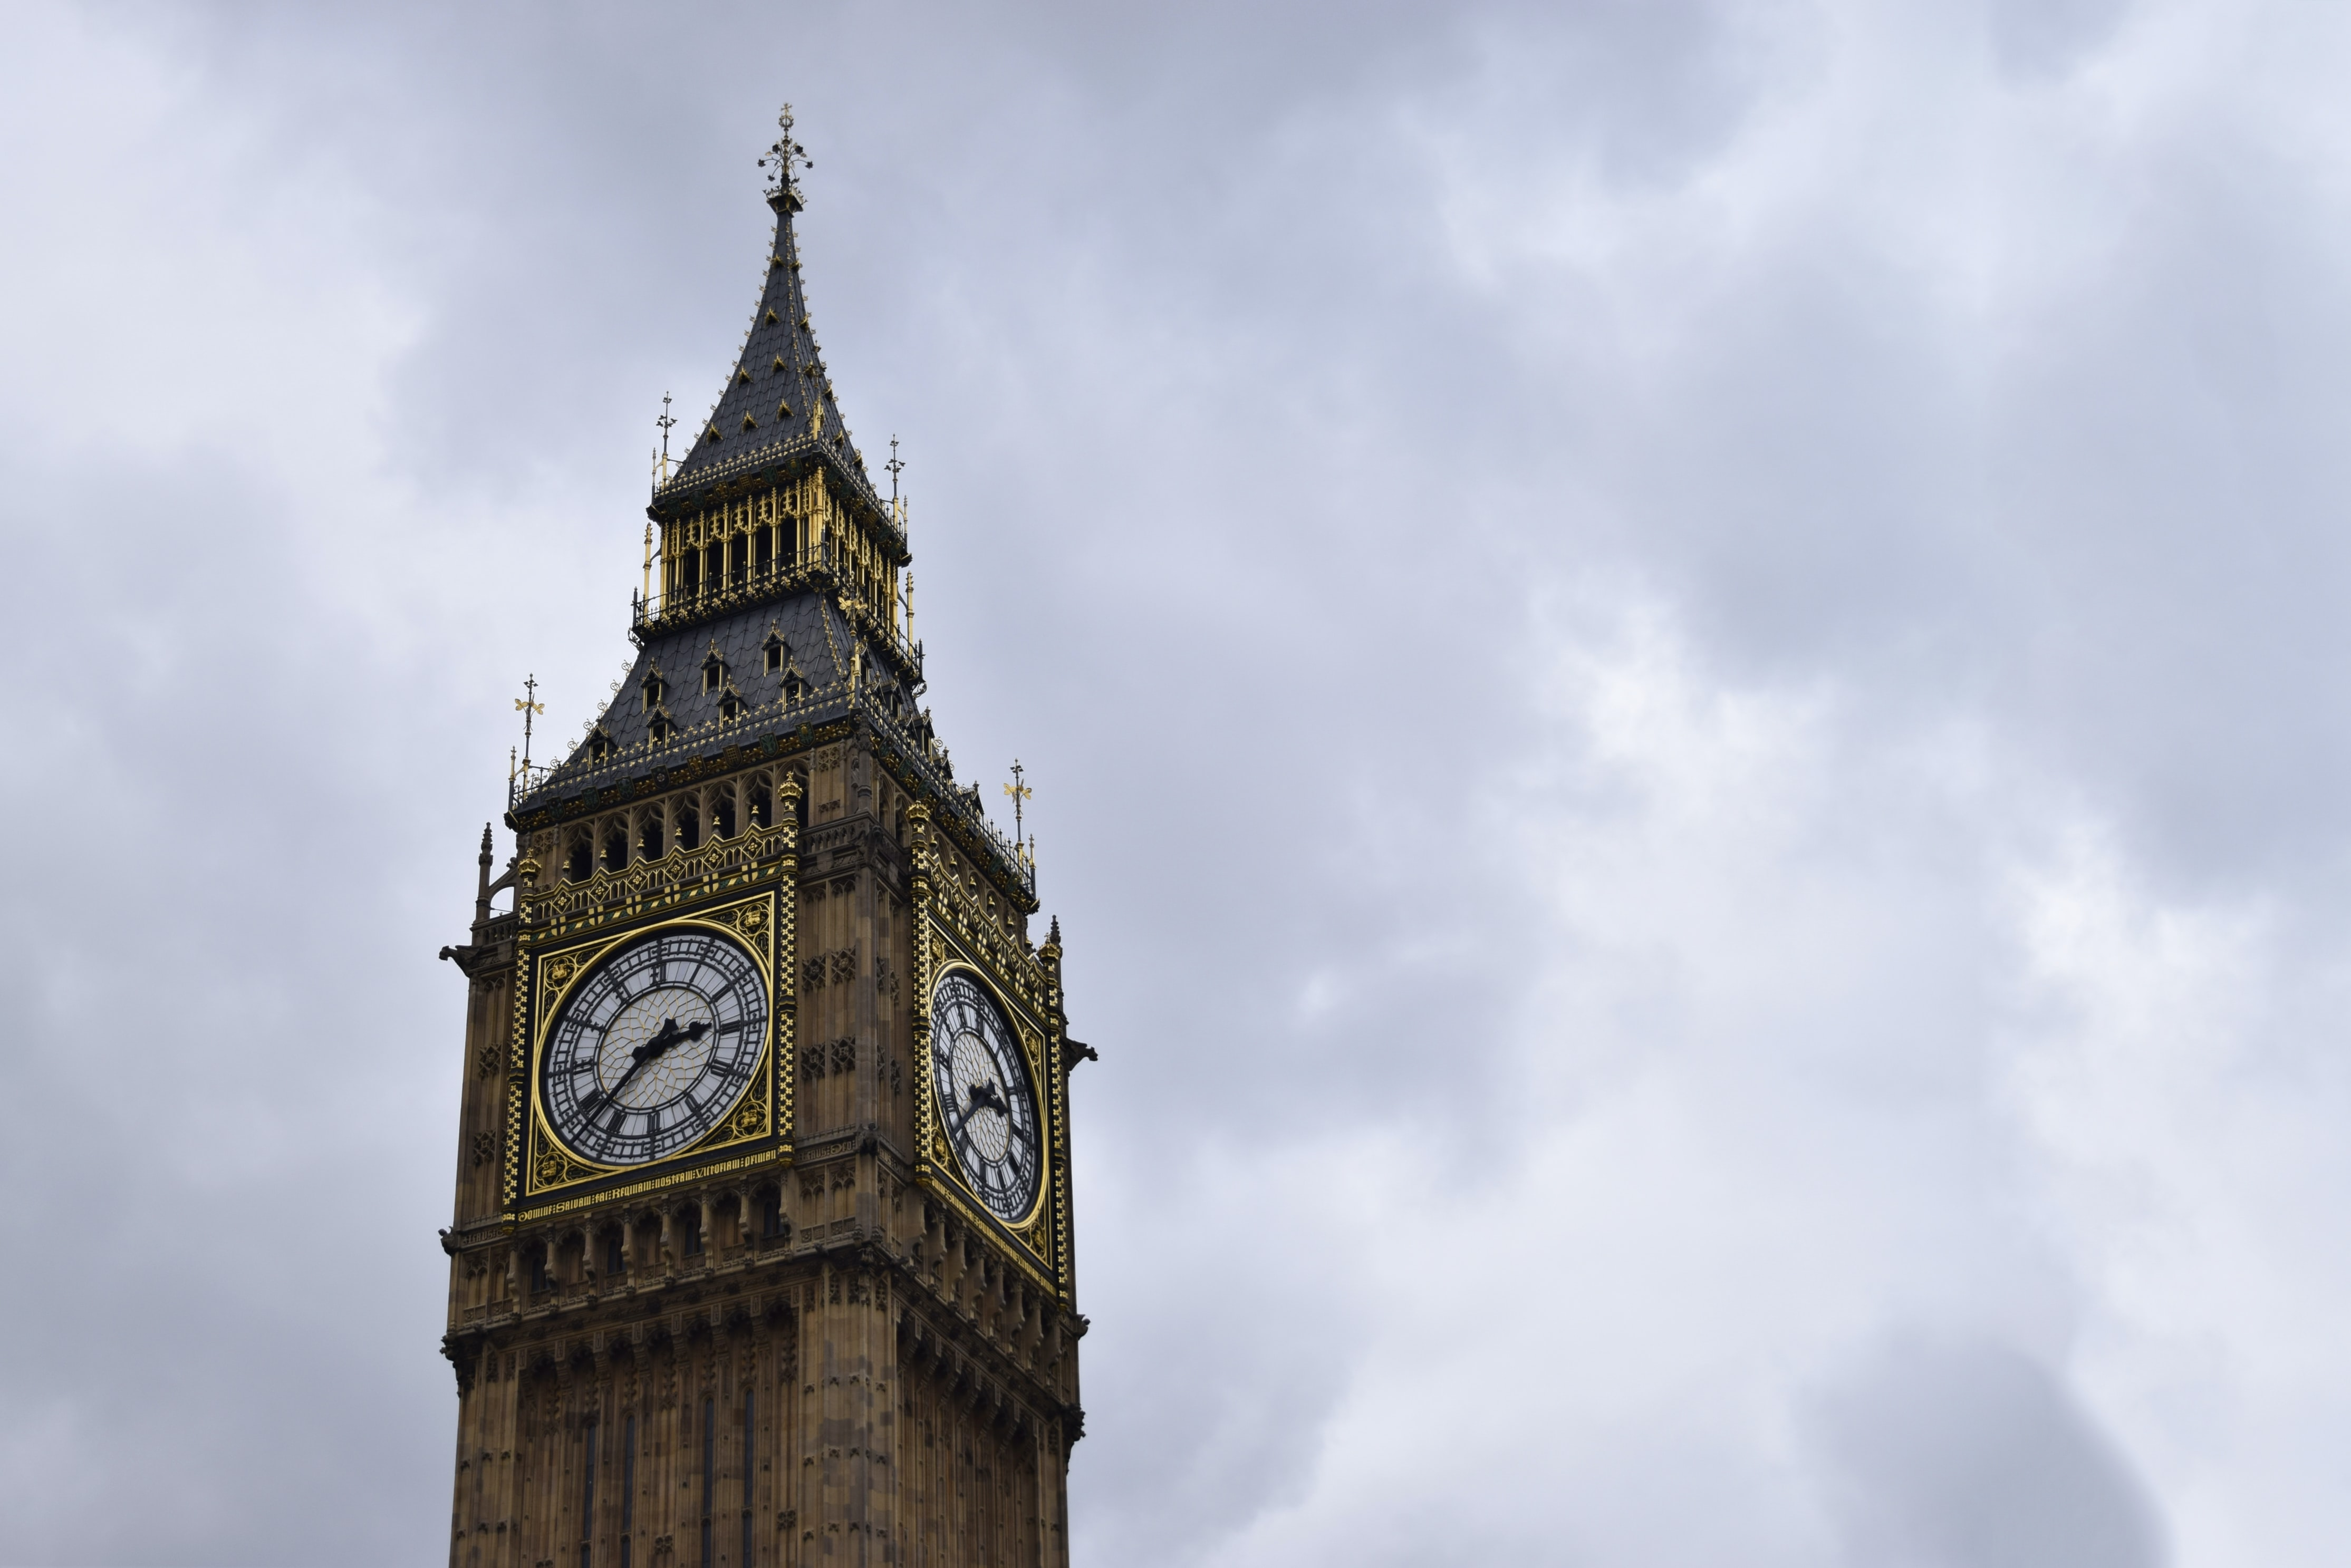 The Elizabeth Tower with the Big Ben bell in London against a cloudy sky